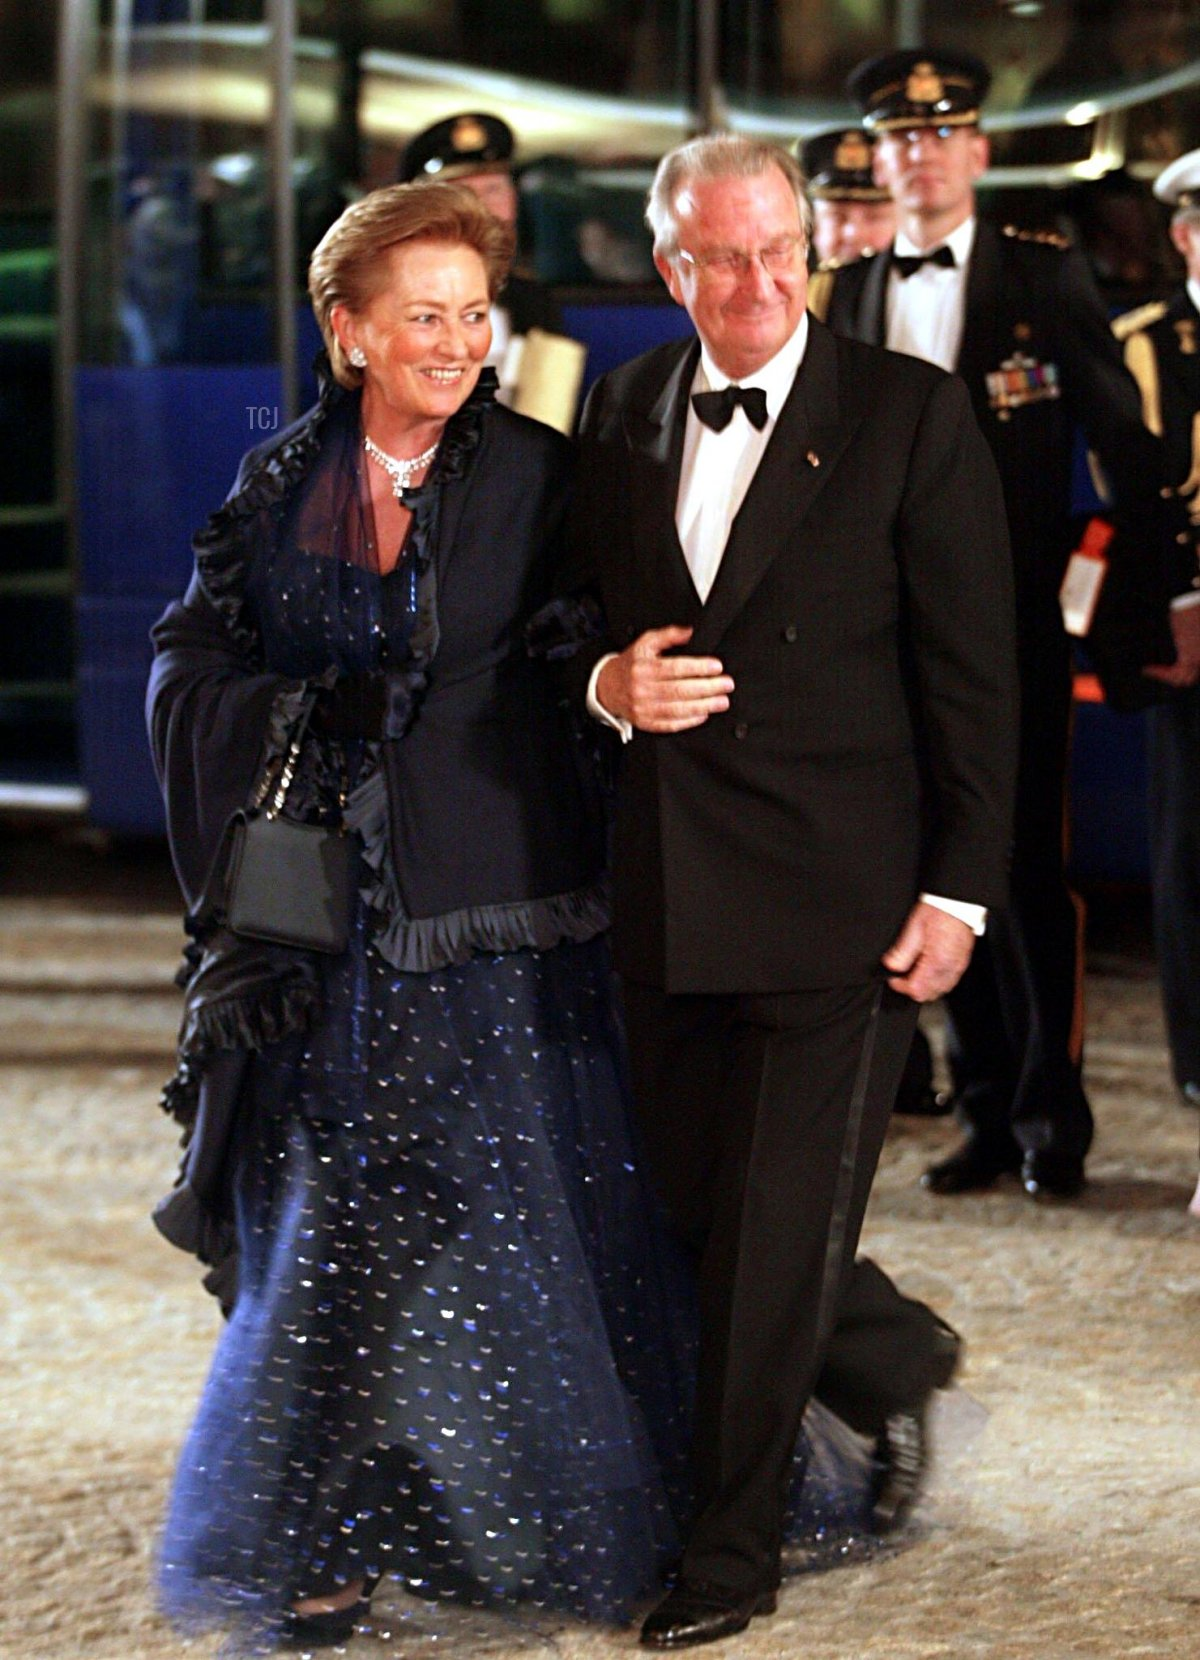 King Albert of Belgium and his wife Queen Paola (l)arrive for the dinner offered by Dutch Crown Prince Willem Alexander and his fiancee Argentinian Maxima Zorreguieta at the Royal Palace in Amsterdam, 31 January 2002